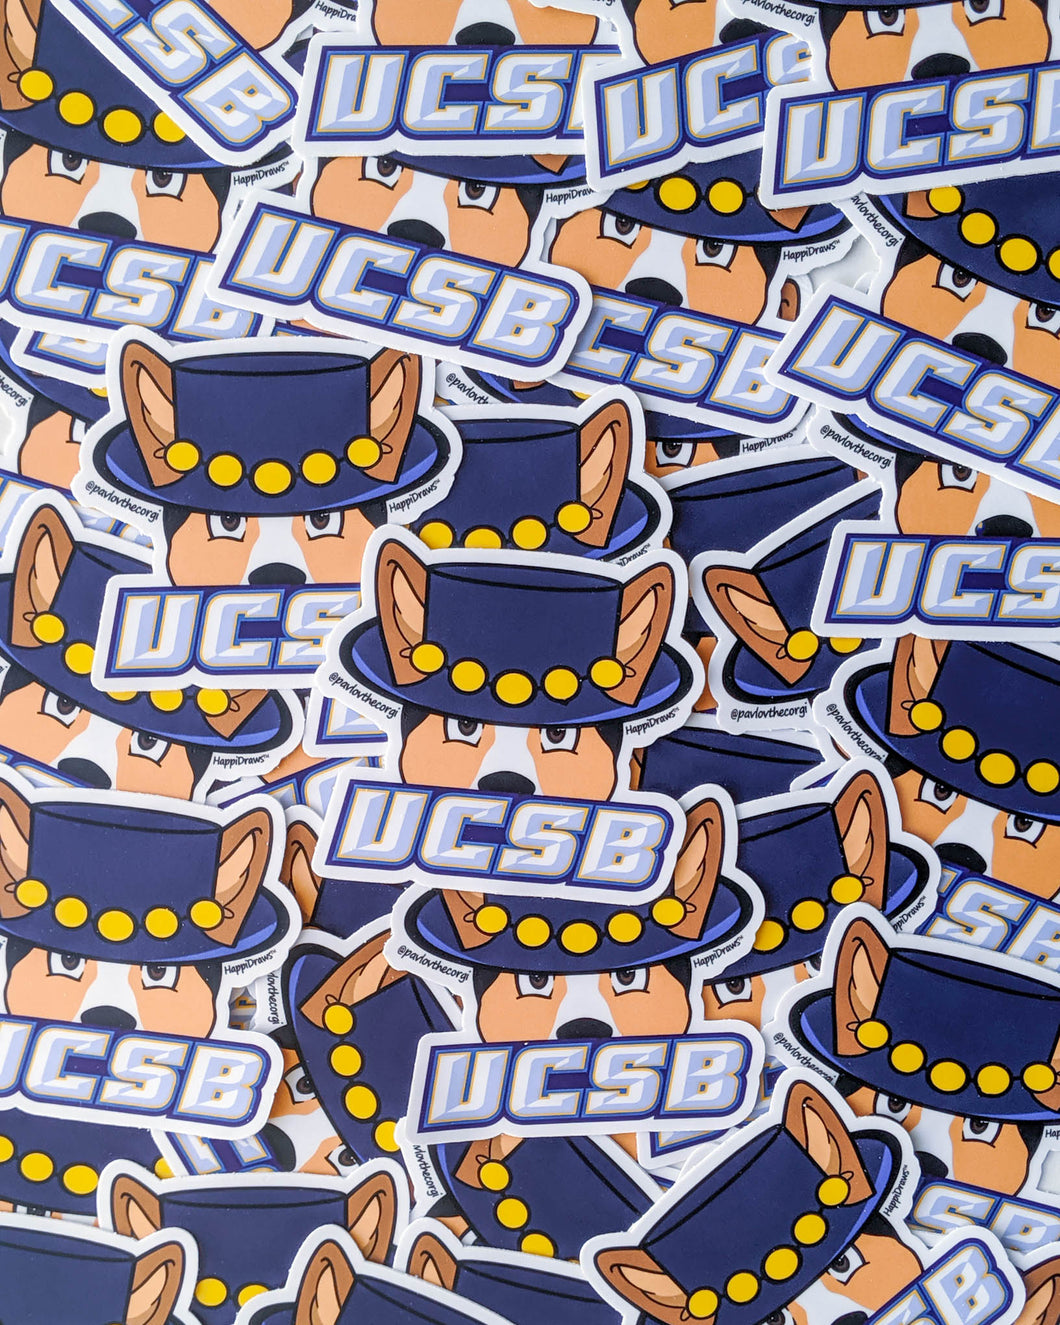 UCSB Corgi Sticker